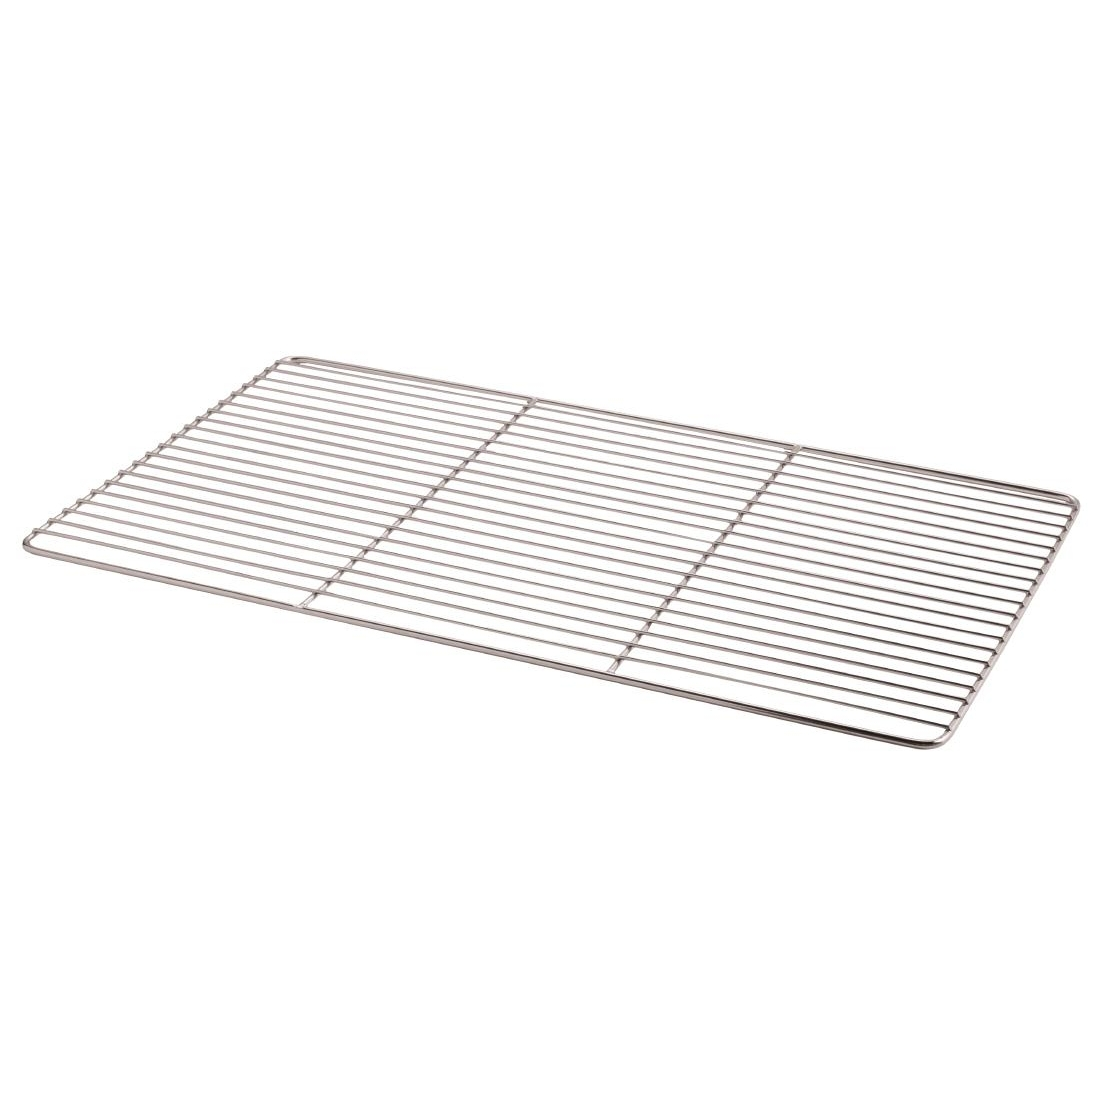 Grille inox GN 1/1 530 X 325mm